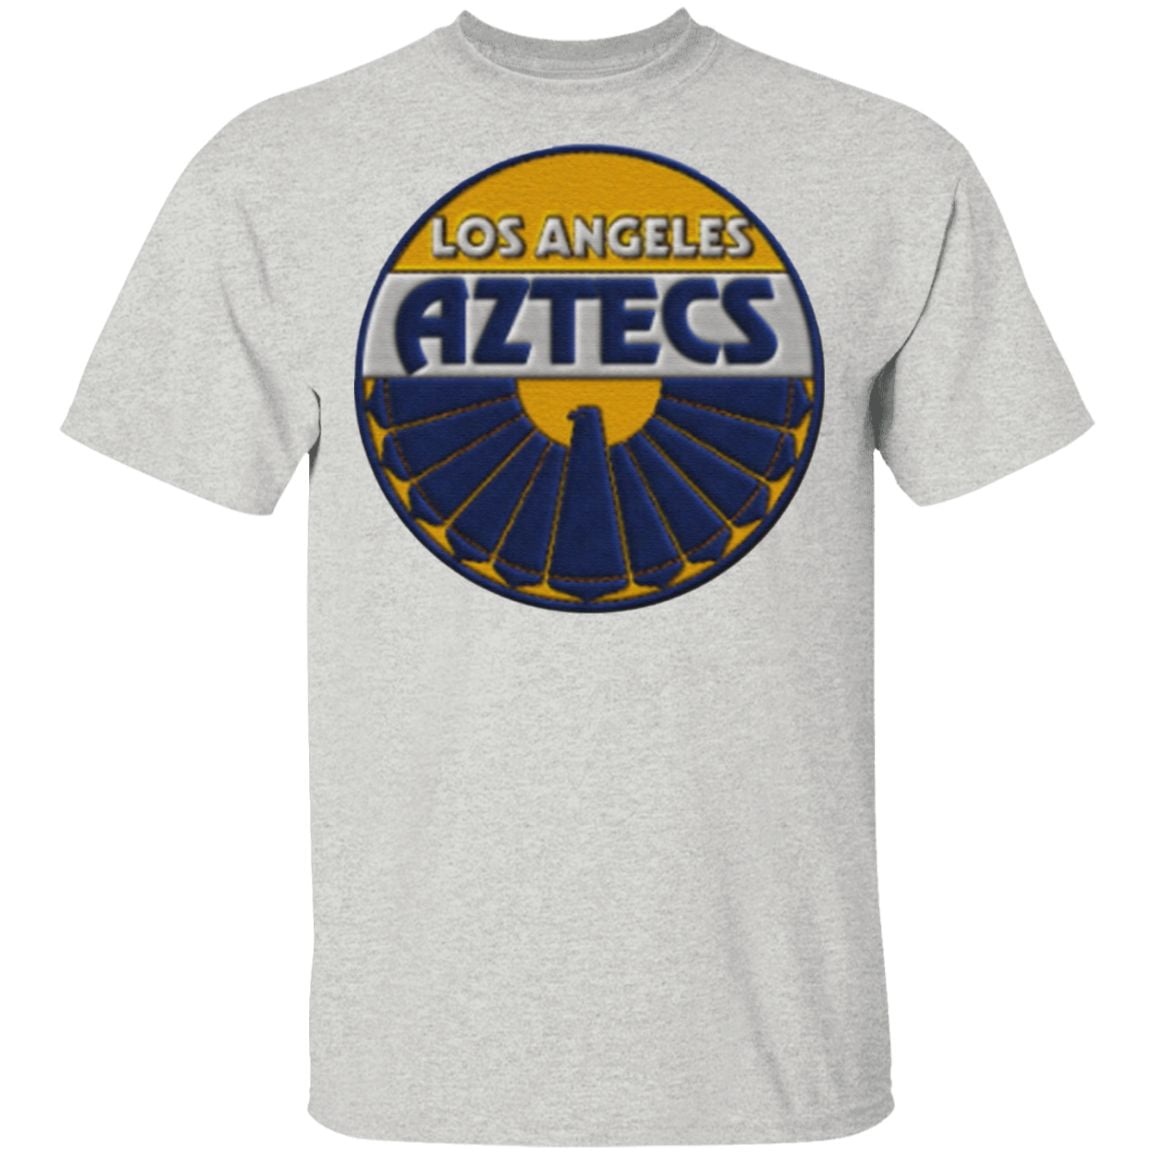 Los Angeles Aztecs Embroidery Patch look T-Shirt